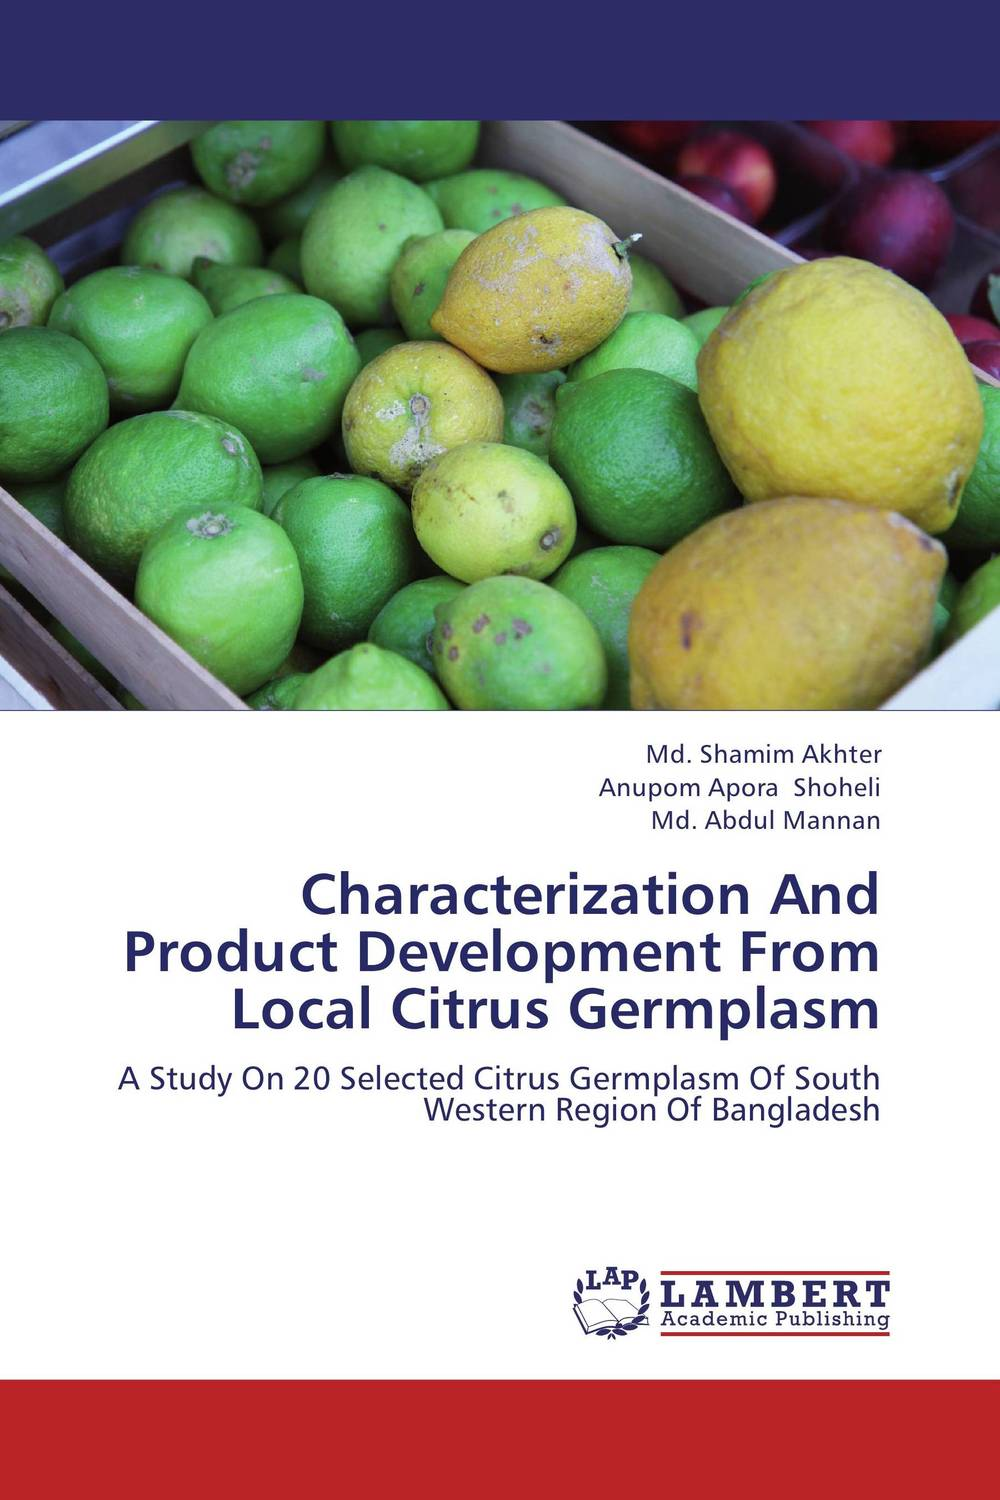 Characterization And Product Development From Local Citrus Germplasm found in brooklyn